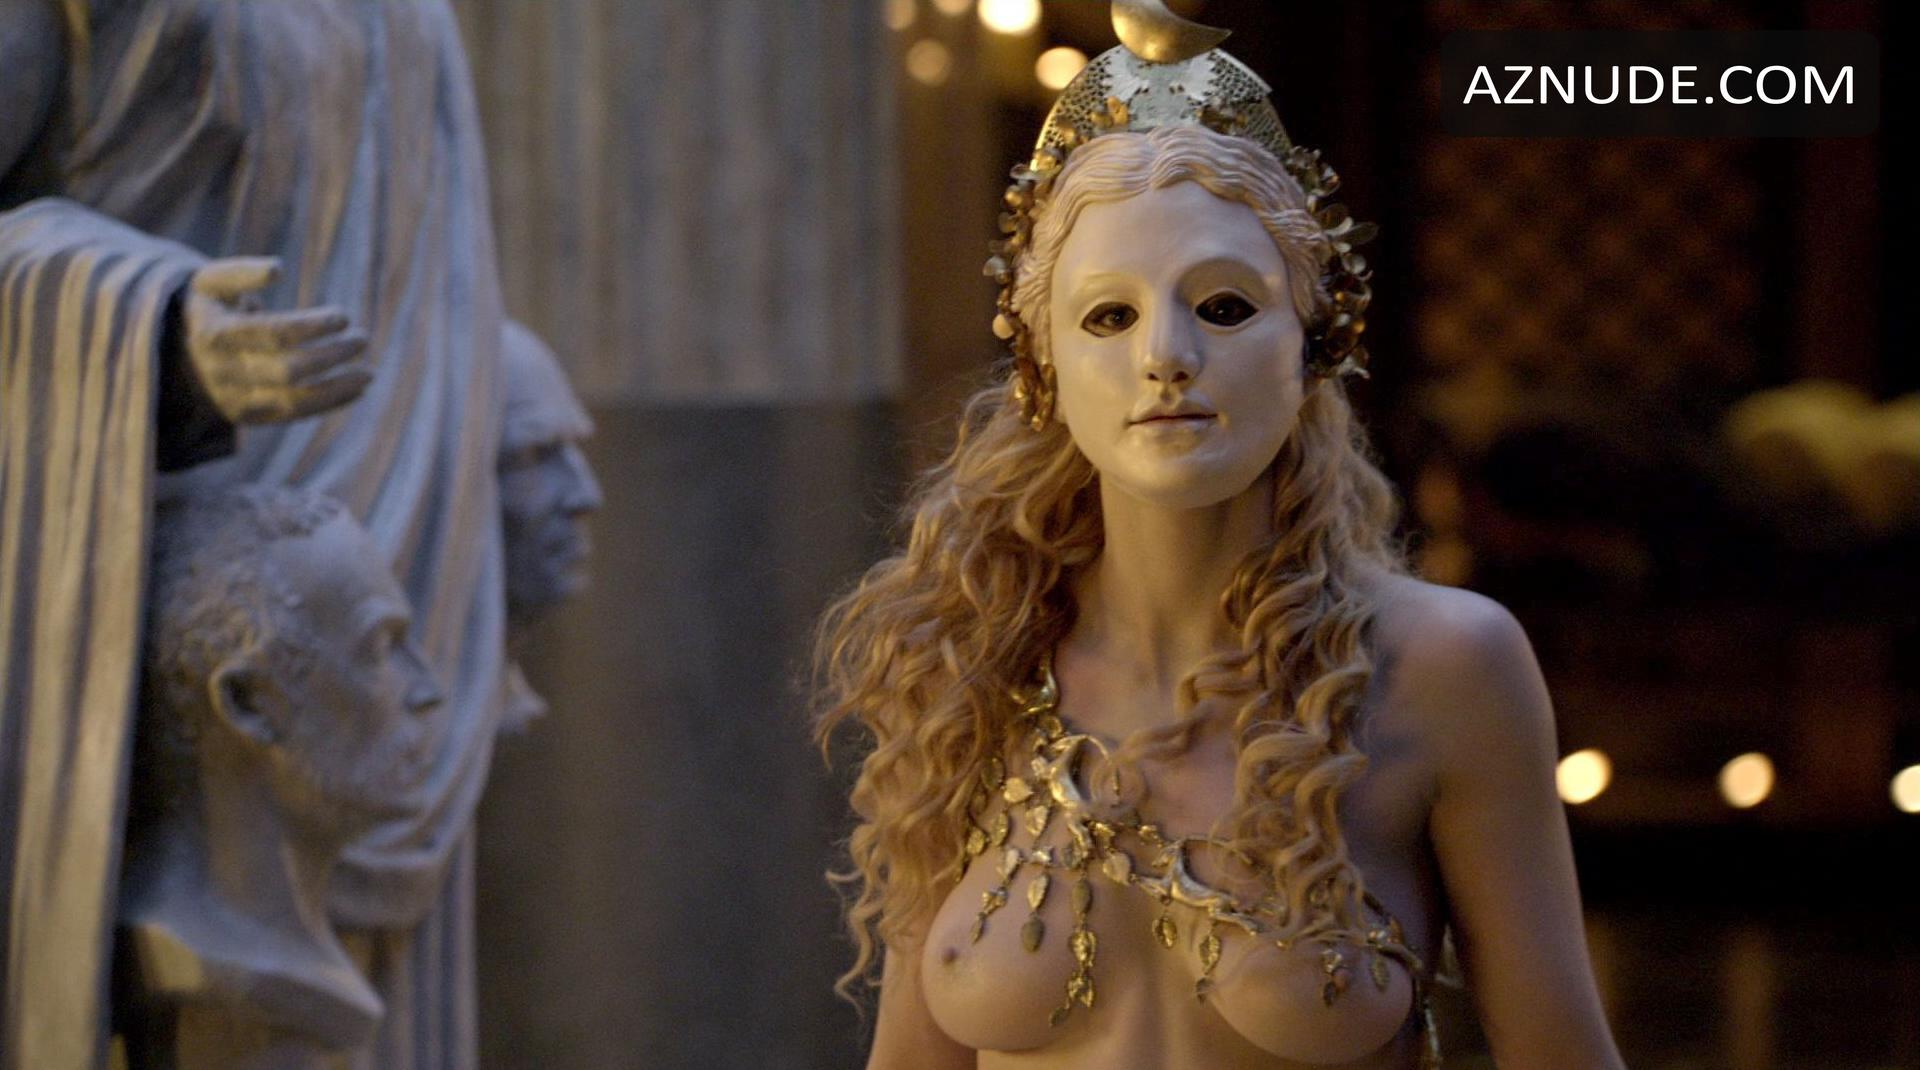 Lucy lawless and viva bianca in spartacus scandalplanetcom